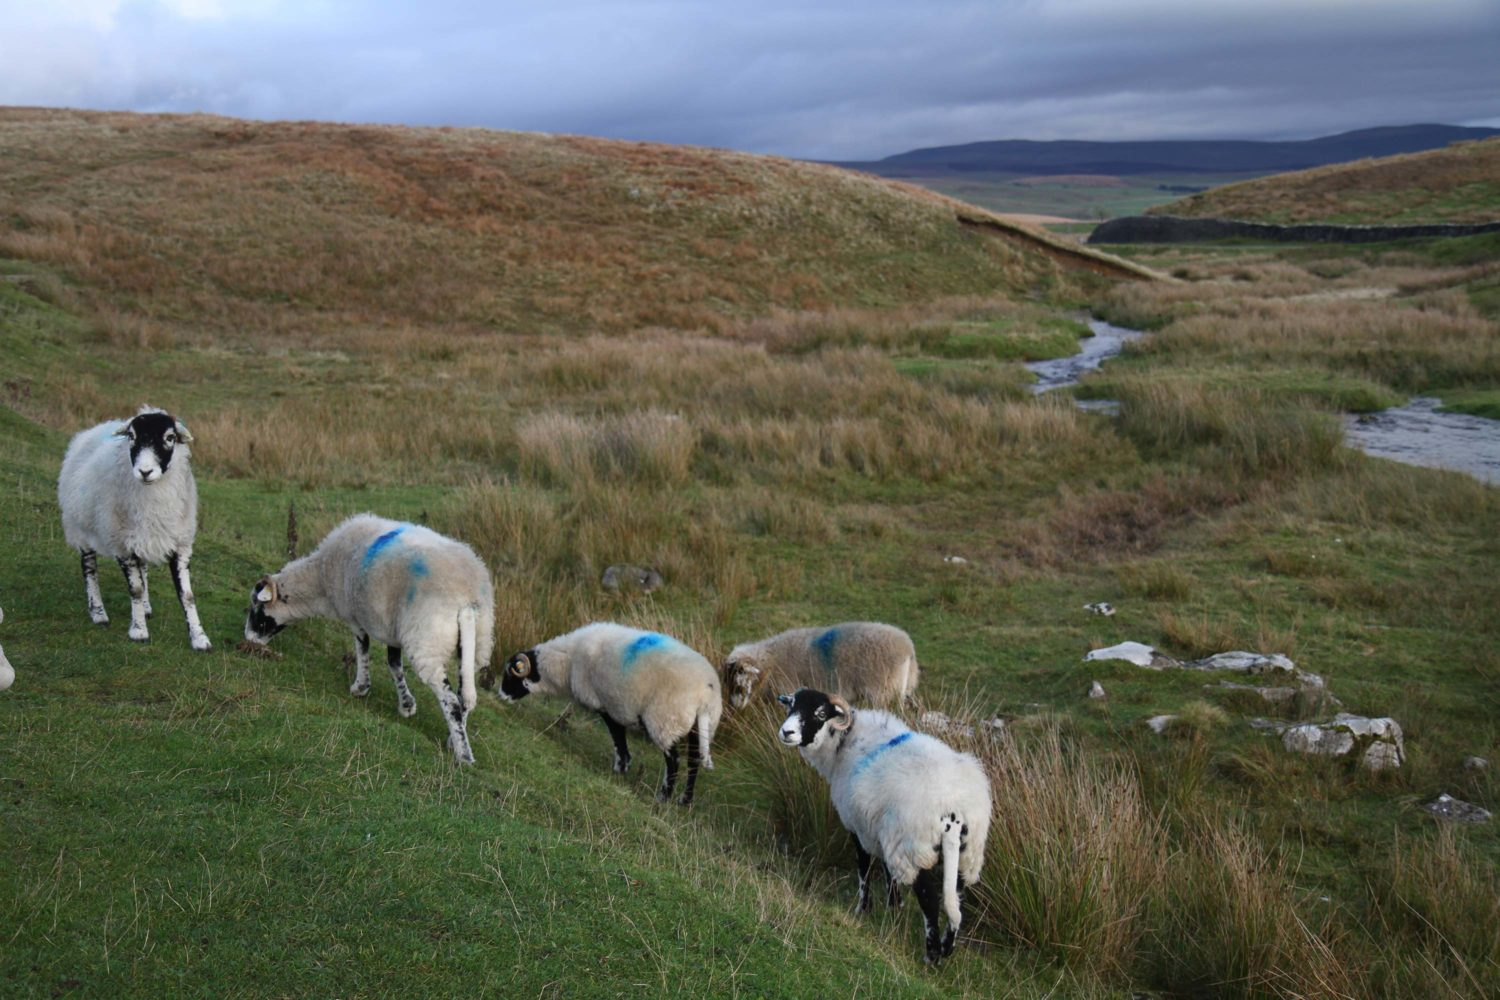 Yorkshire dales moutons